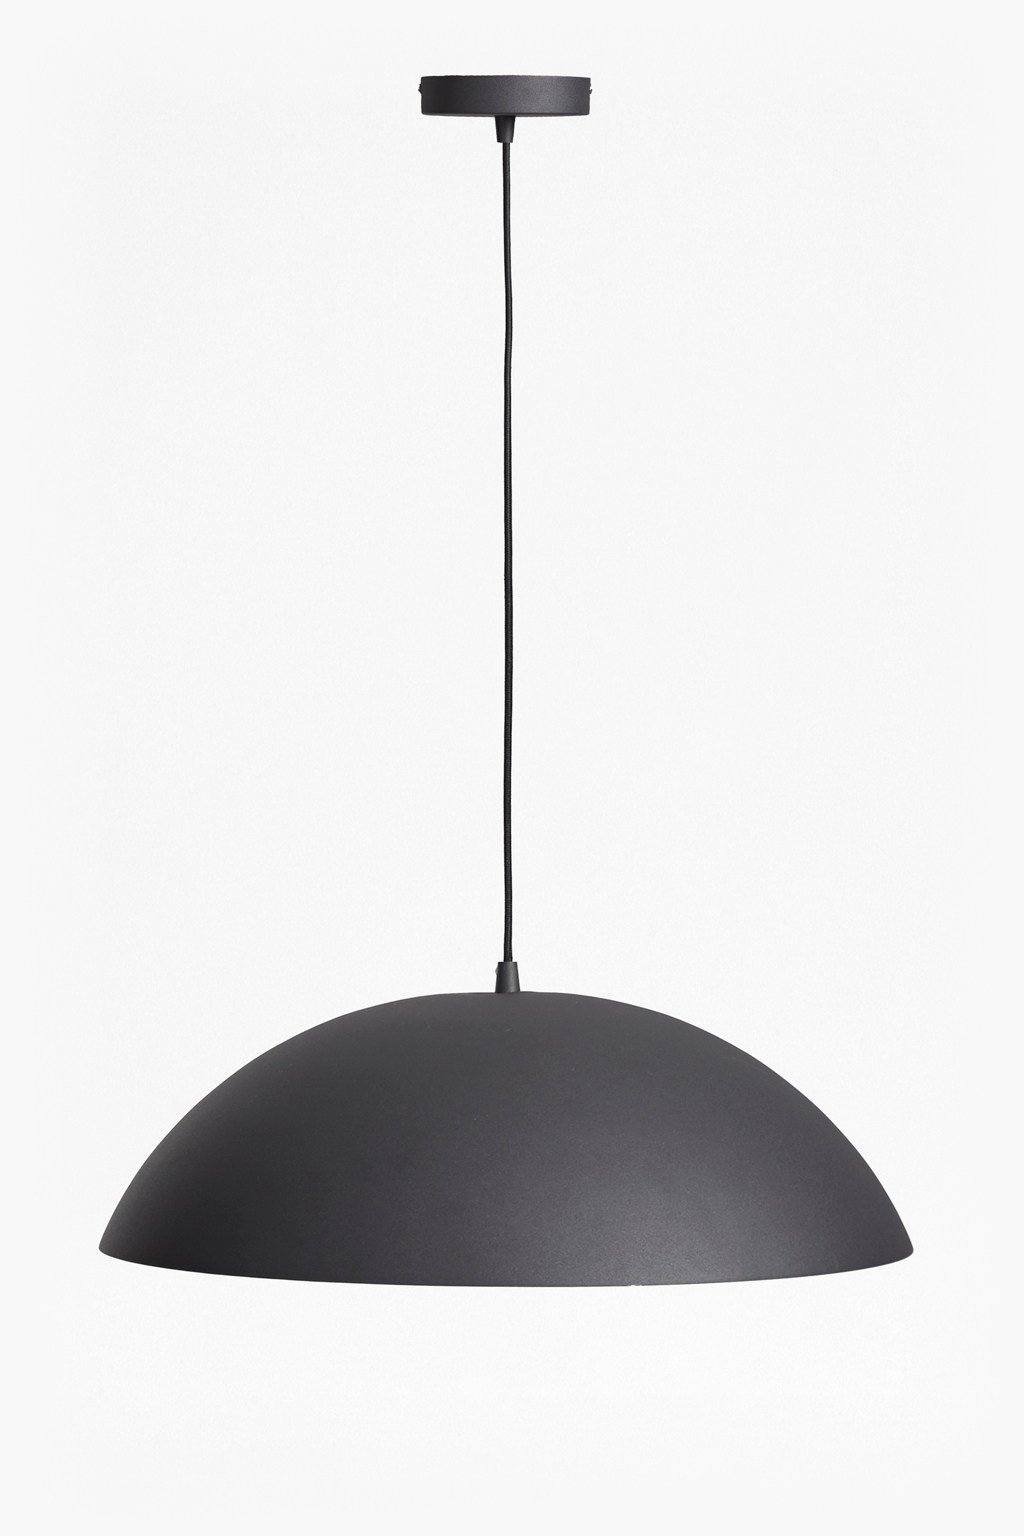 in pendant on crowdyhouse germany teo timeless icon made by as everyday designed objects light shop part ceiling